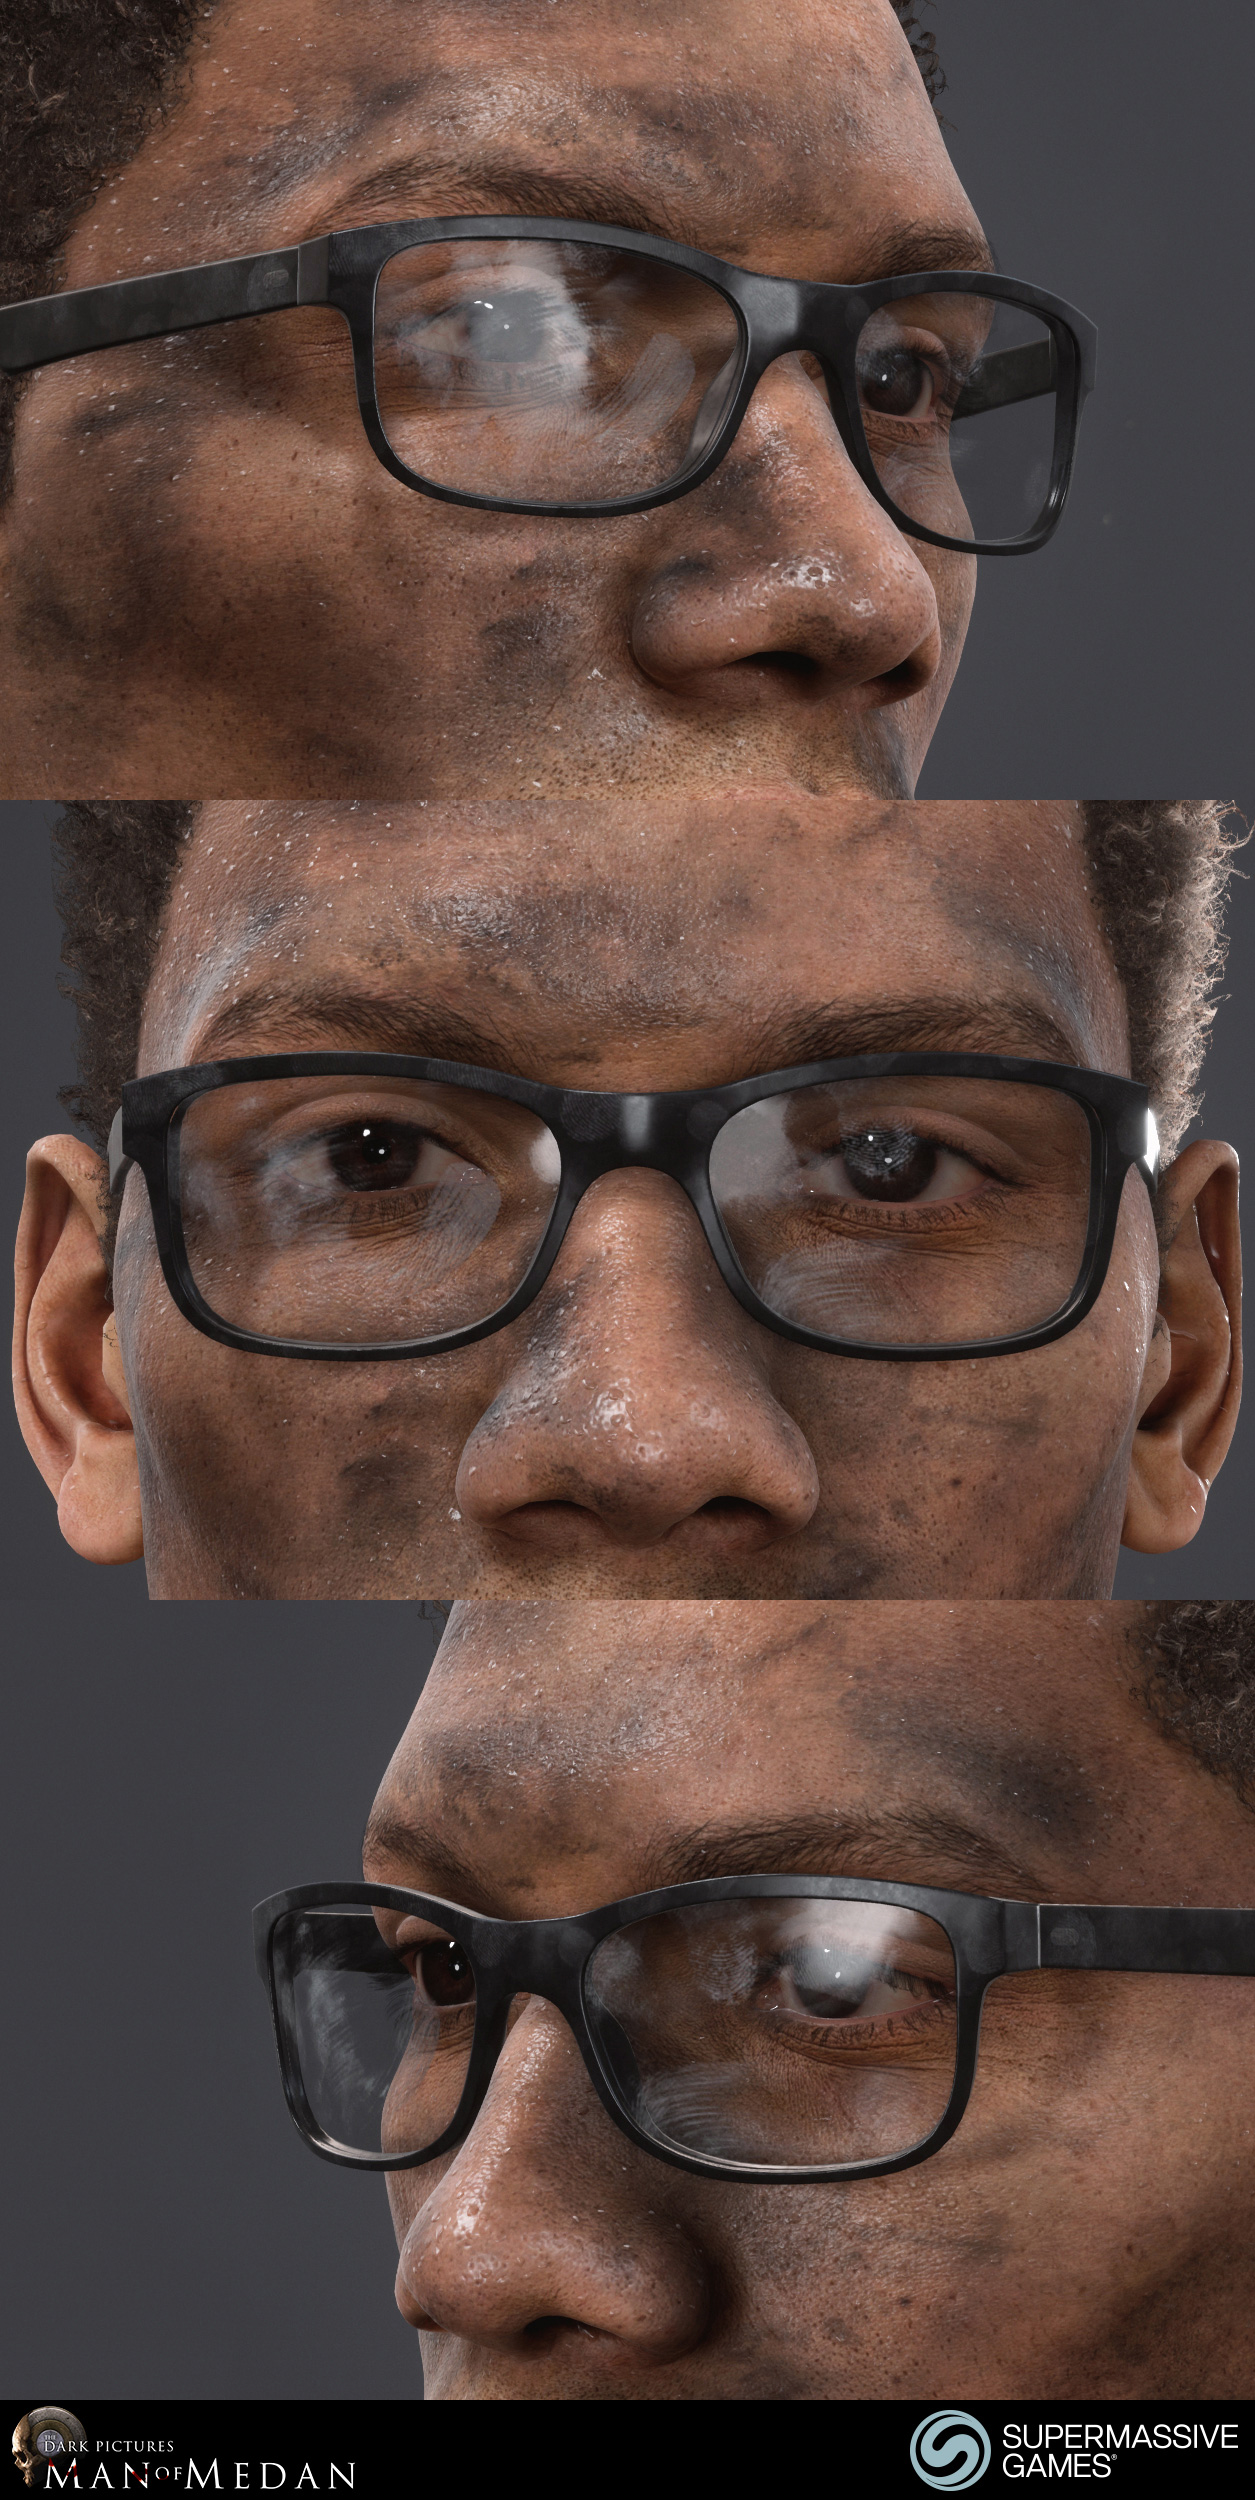 Brad is character from The Dark Pictures - Man of Medan game in Unreal Engine. Dirty face and glasses.